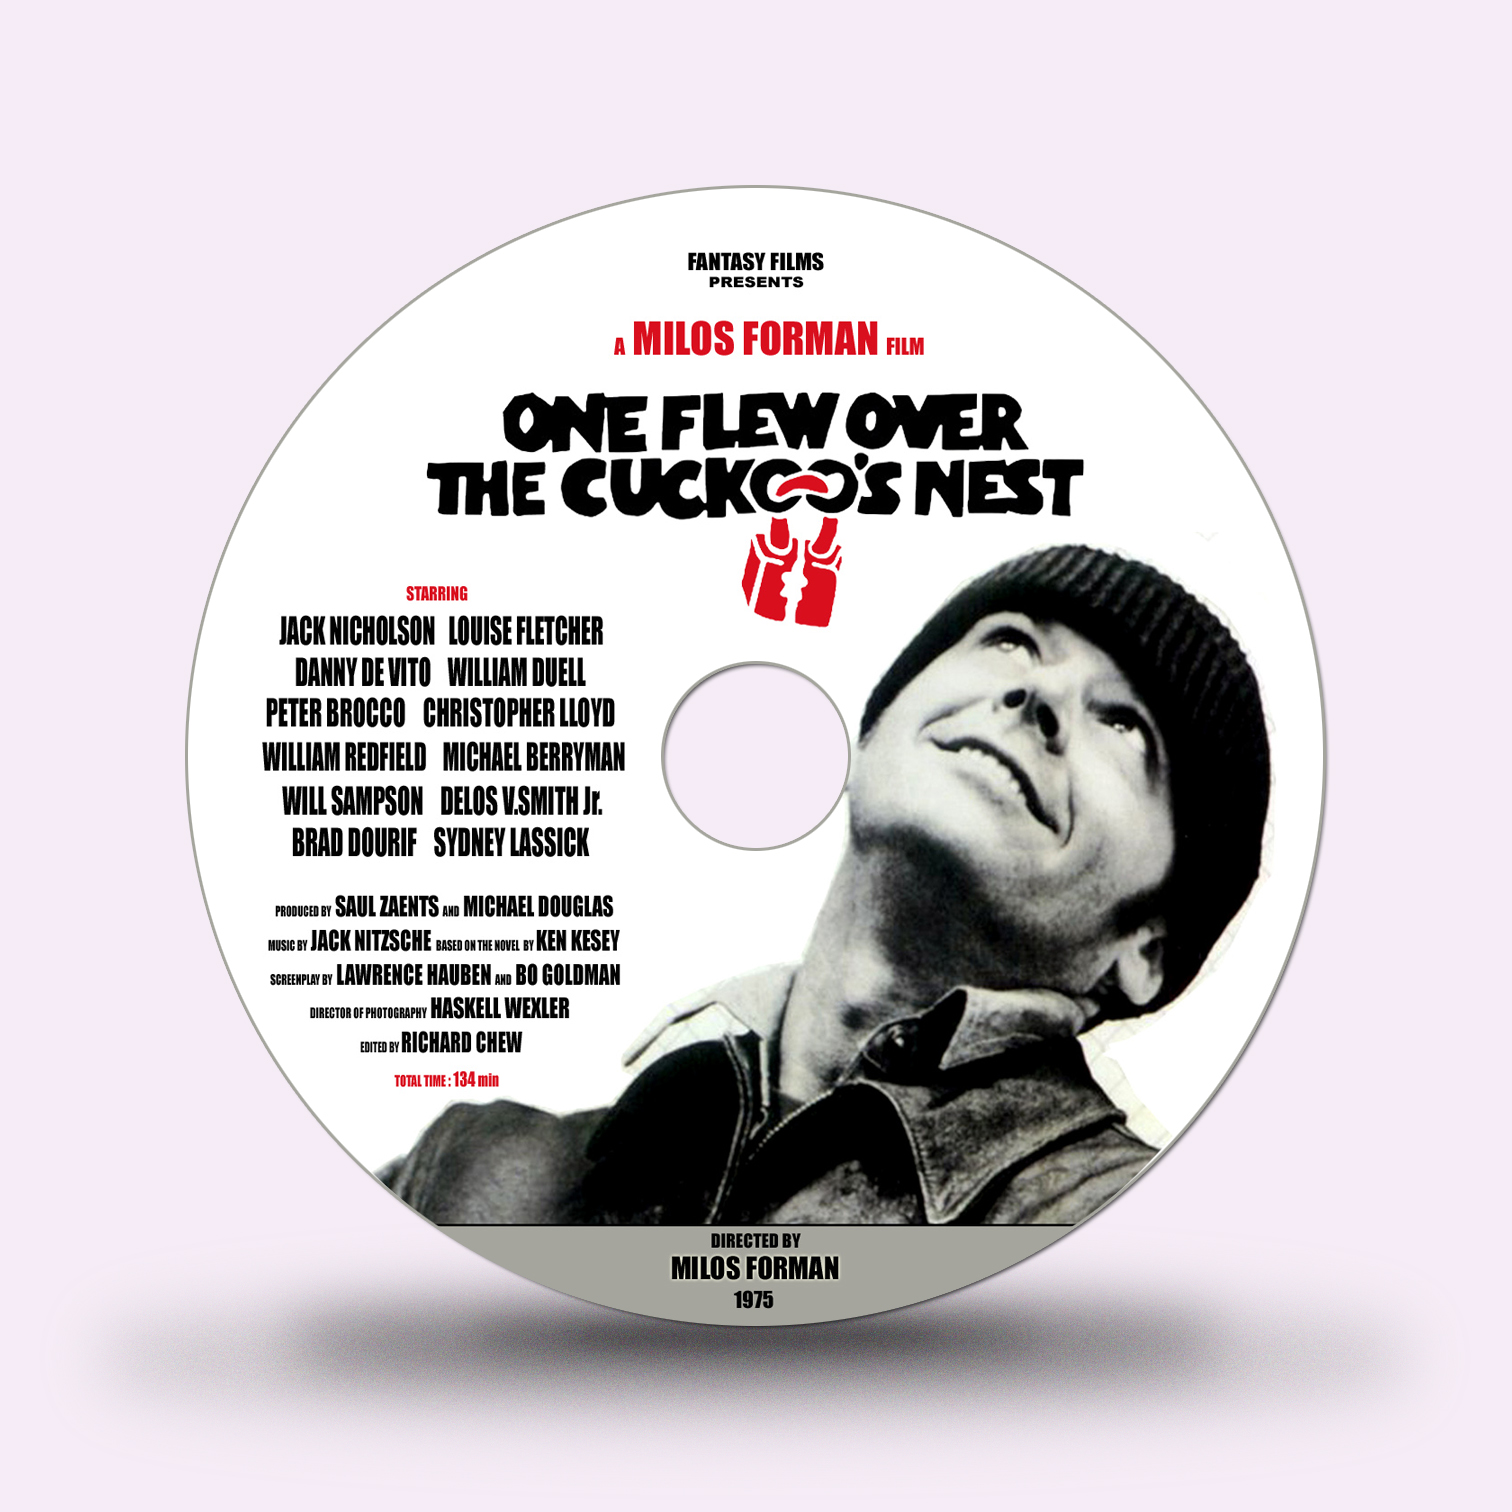 009 Essay Example One Flew Over The Cuckoo S1 Cuckoos Wonderful Nest Cuckoo's Prompts Writing Analysis Questions Full